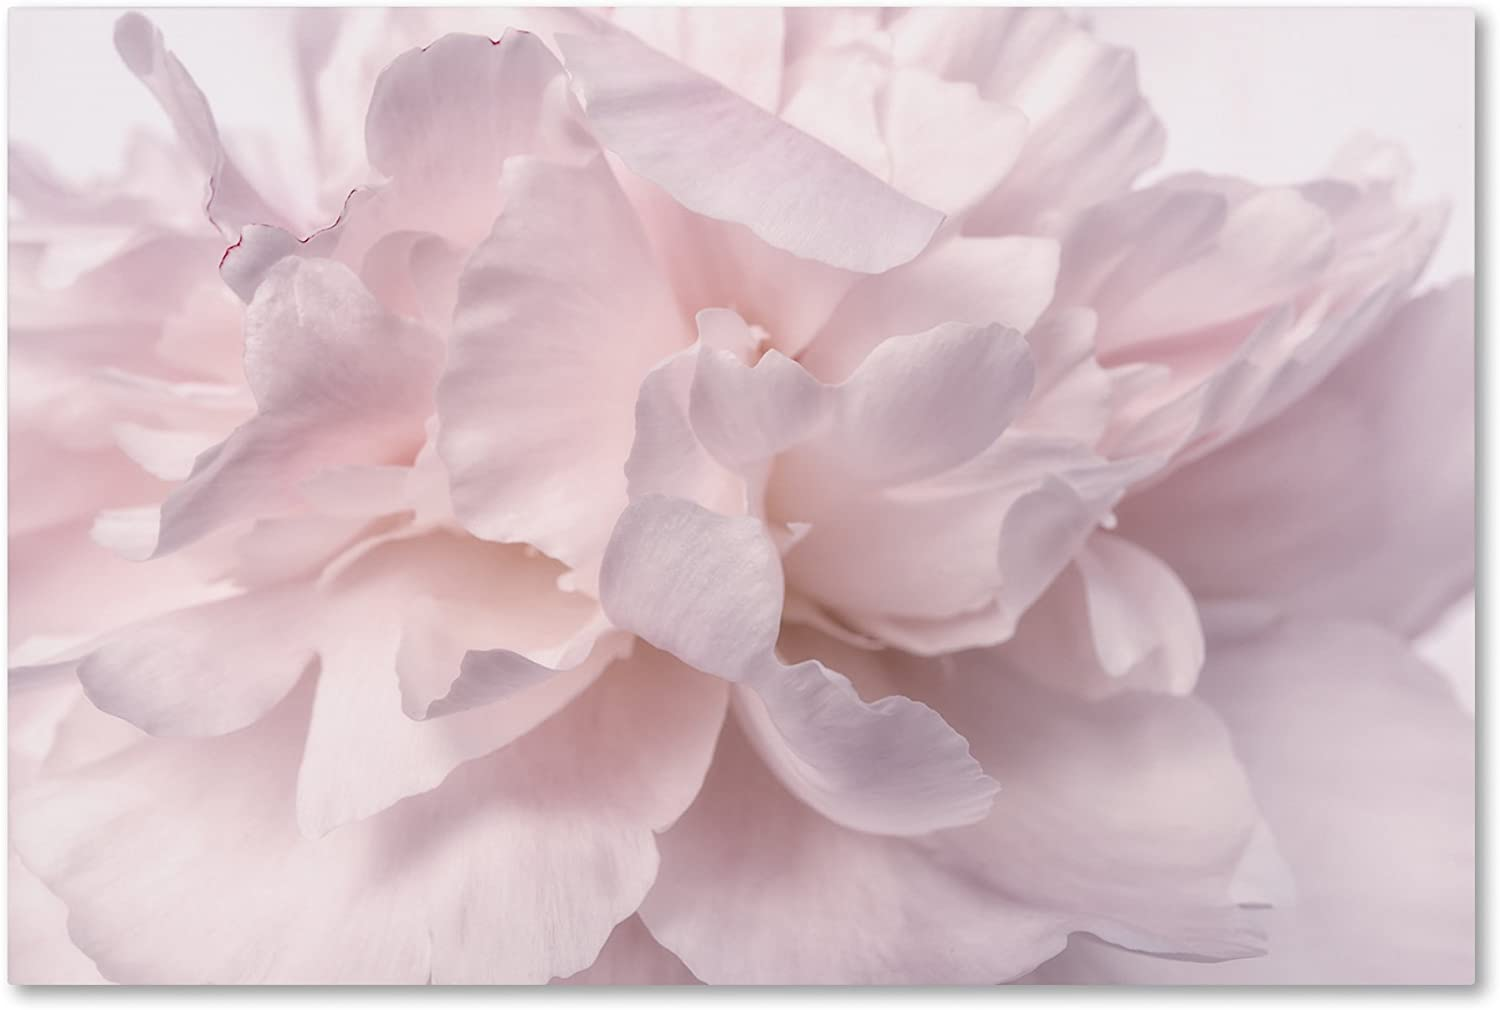 Pink Peony Petals Manufacturer regenerated product II by Cora Niele Wall Animer and price revision Art 12x19-Inch Canvas